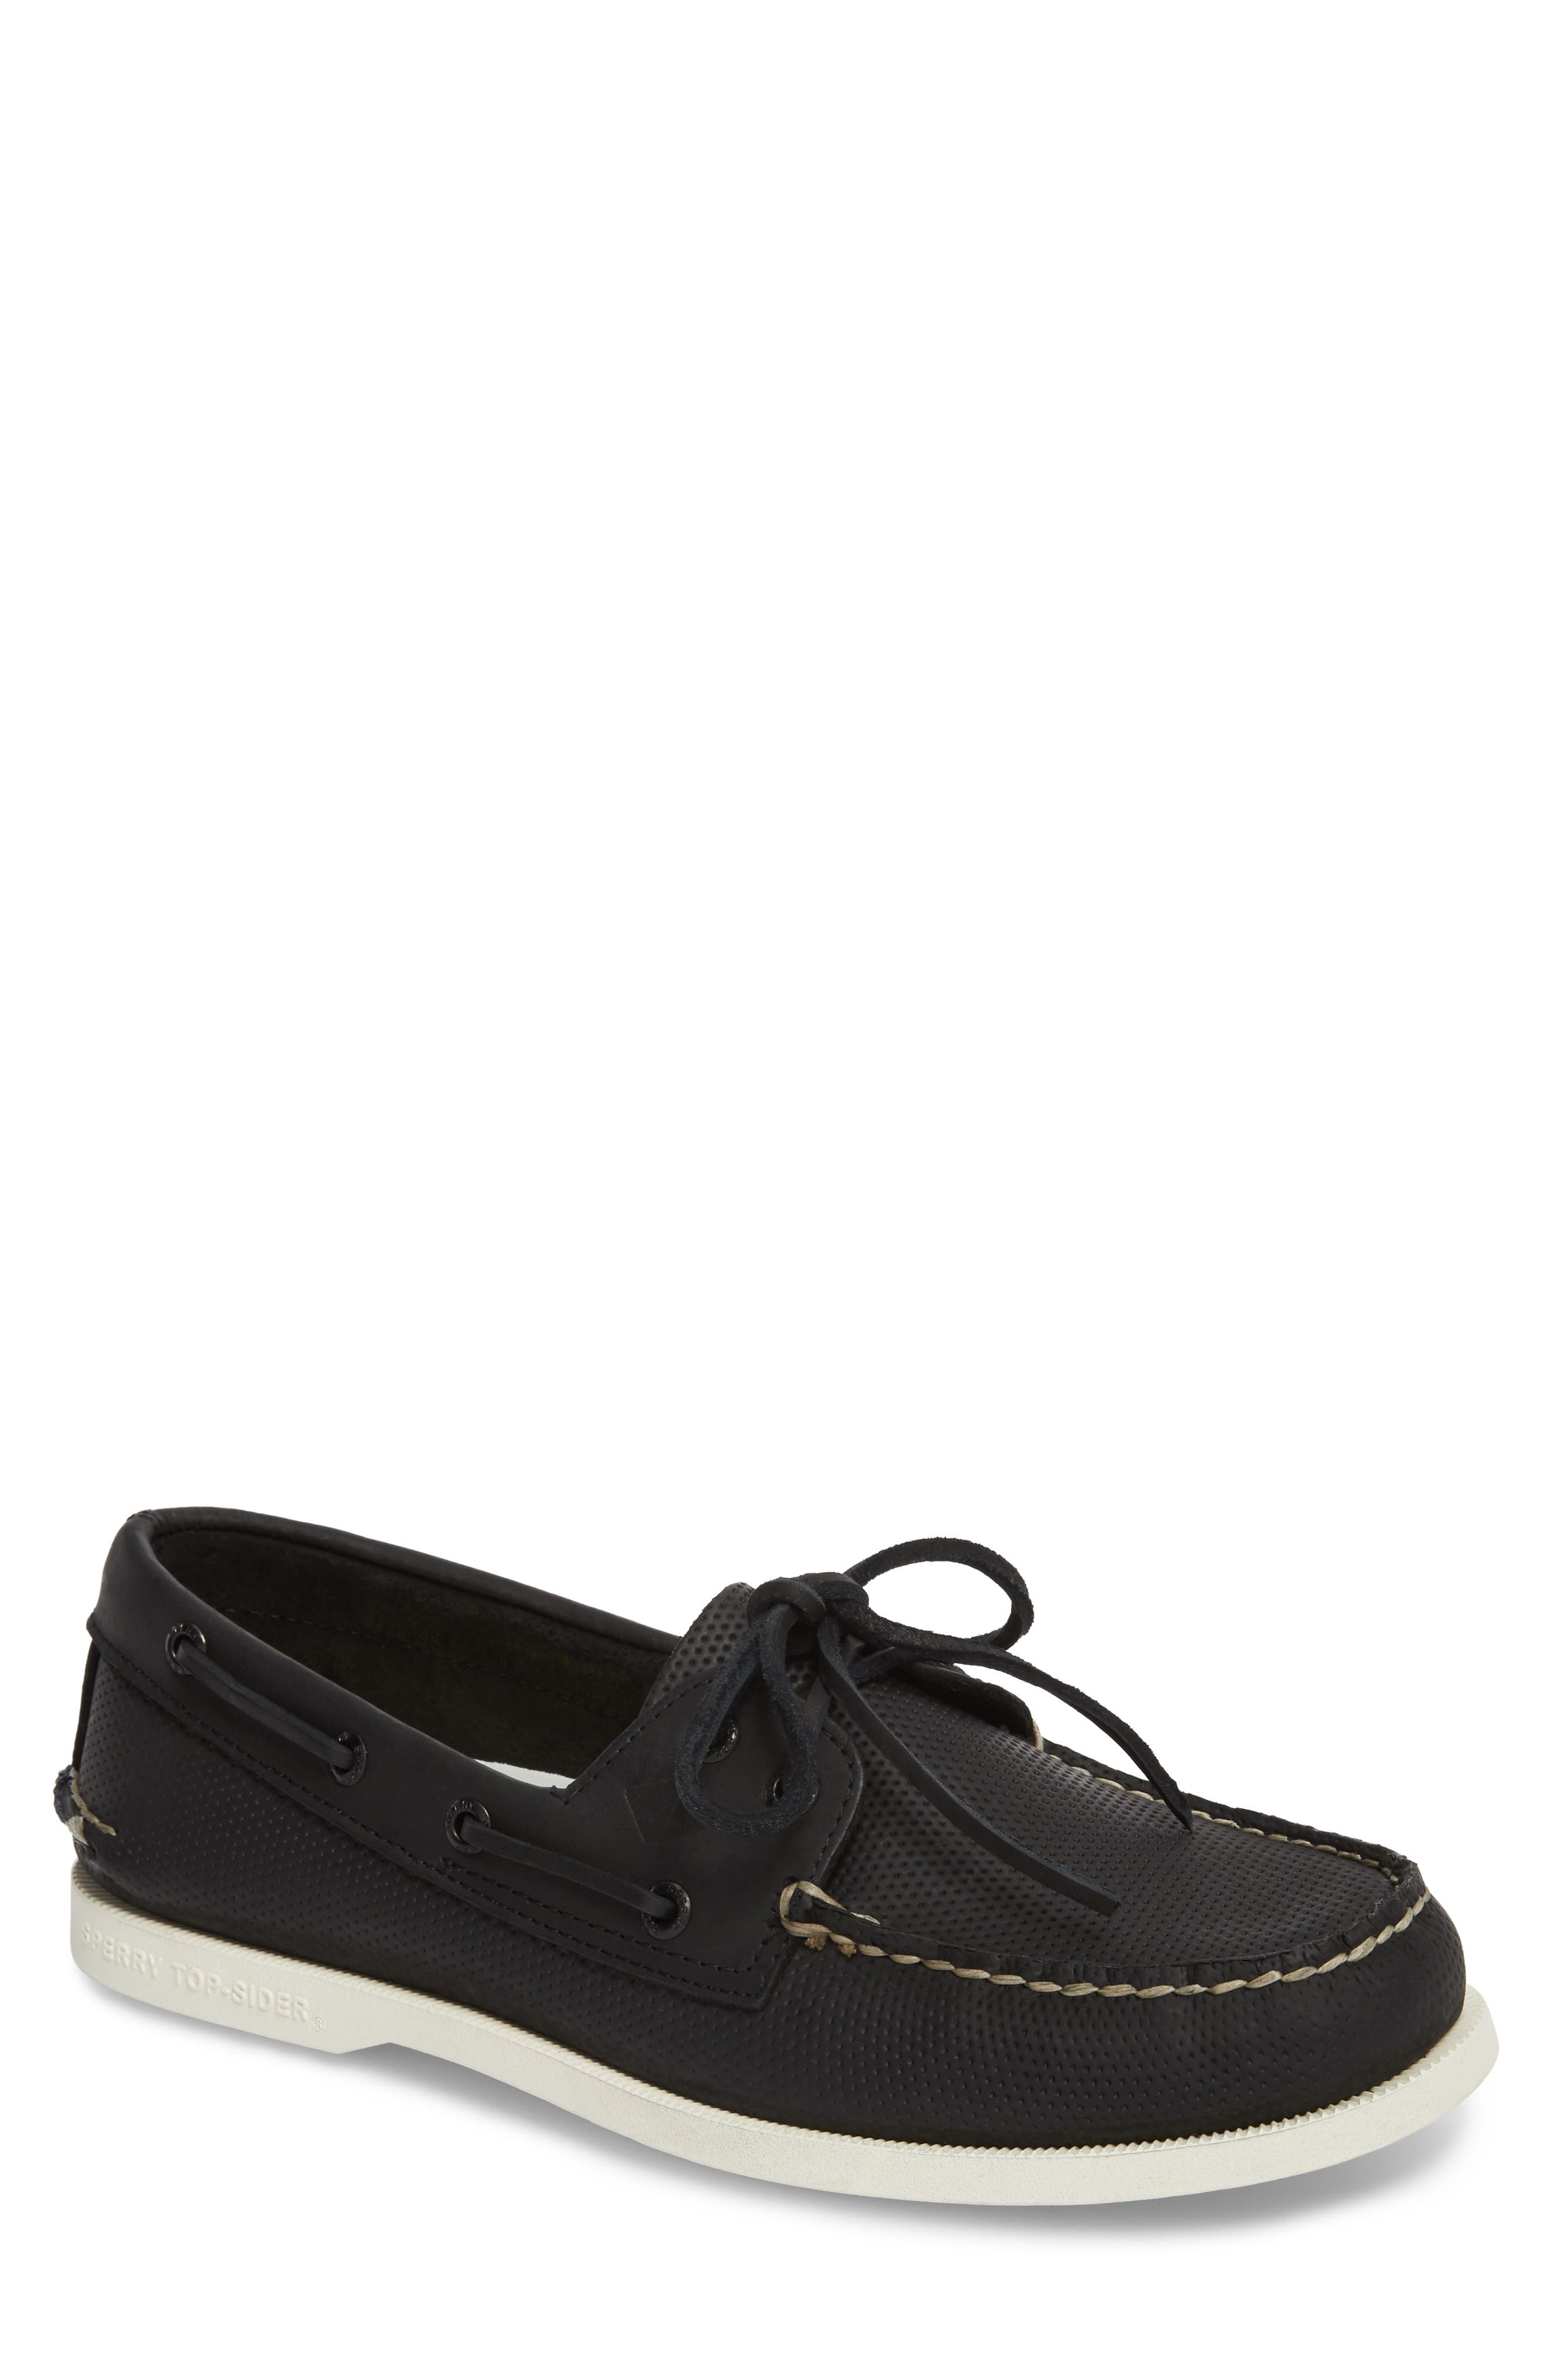 Sperry AO 2 Eye Perforated Boat Shoe (Men)